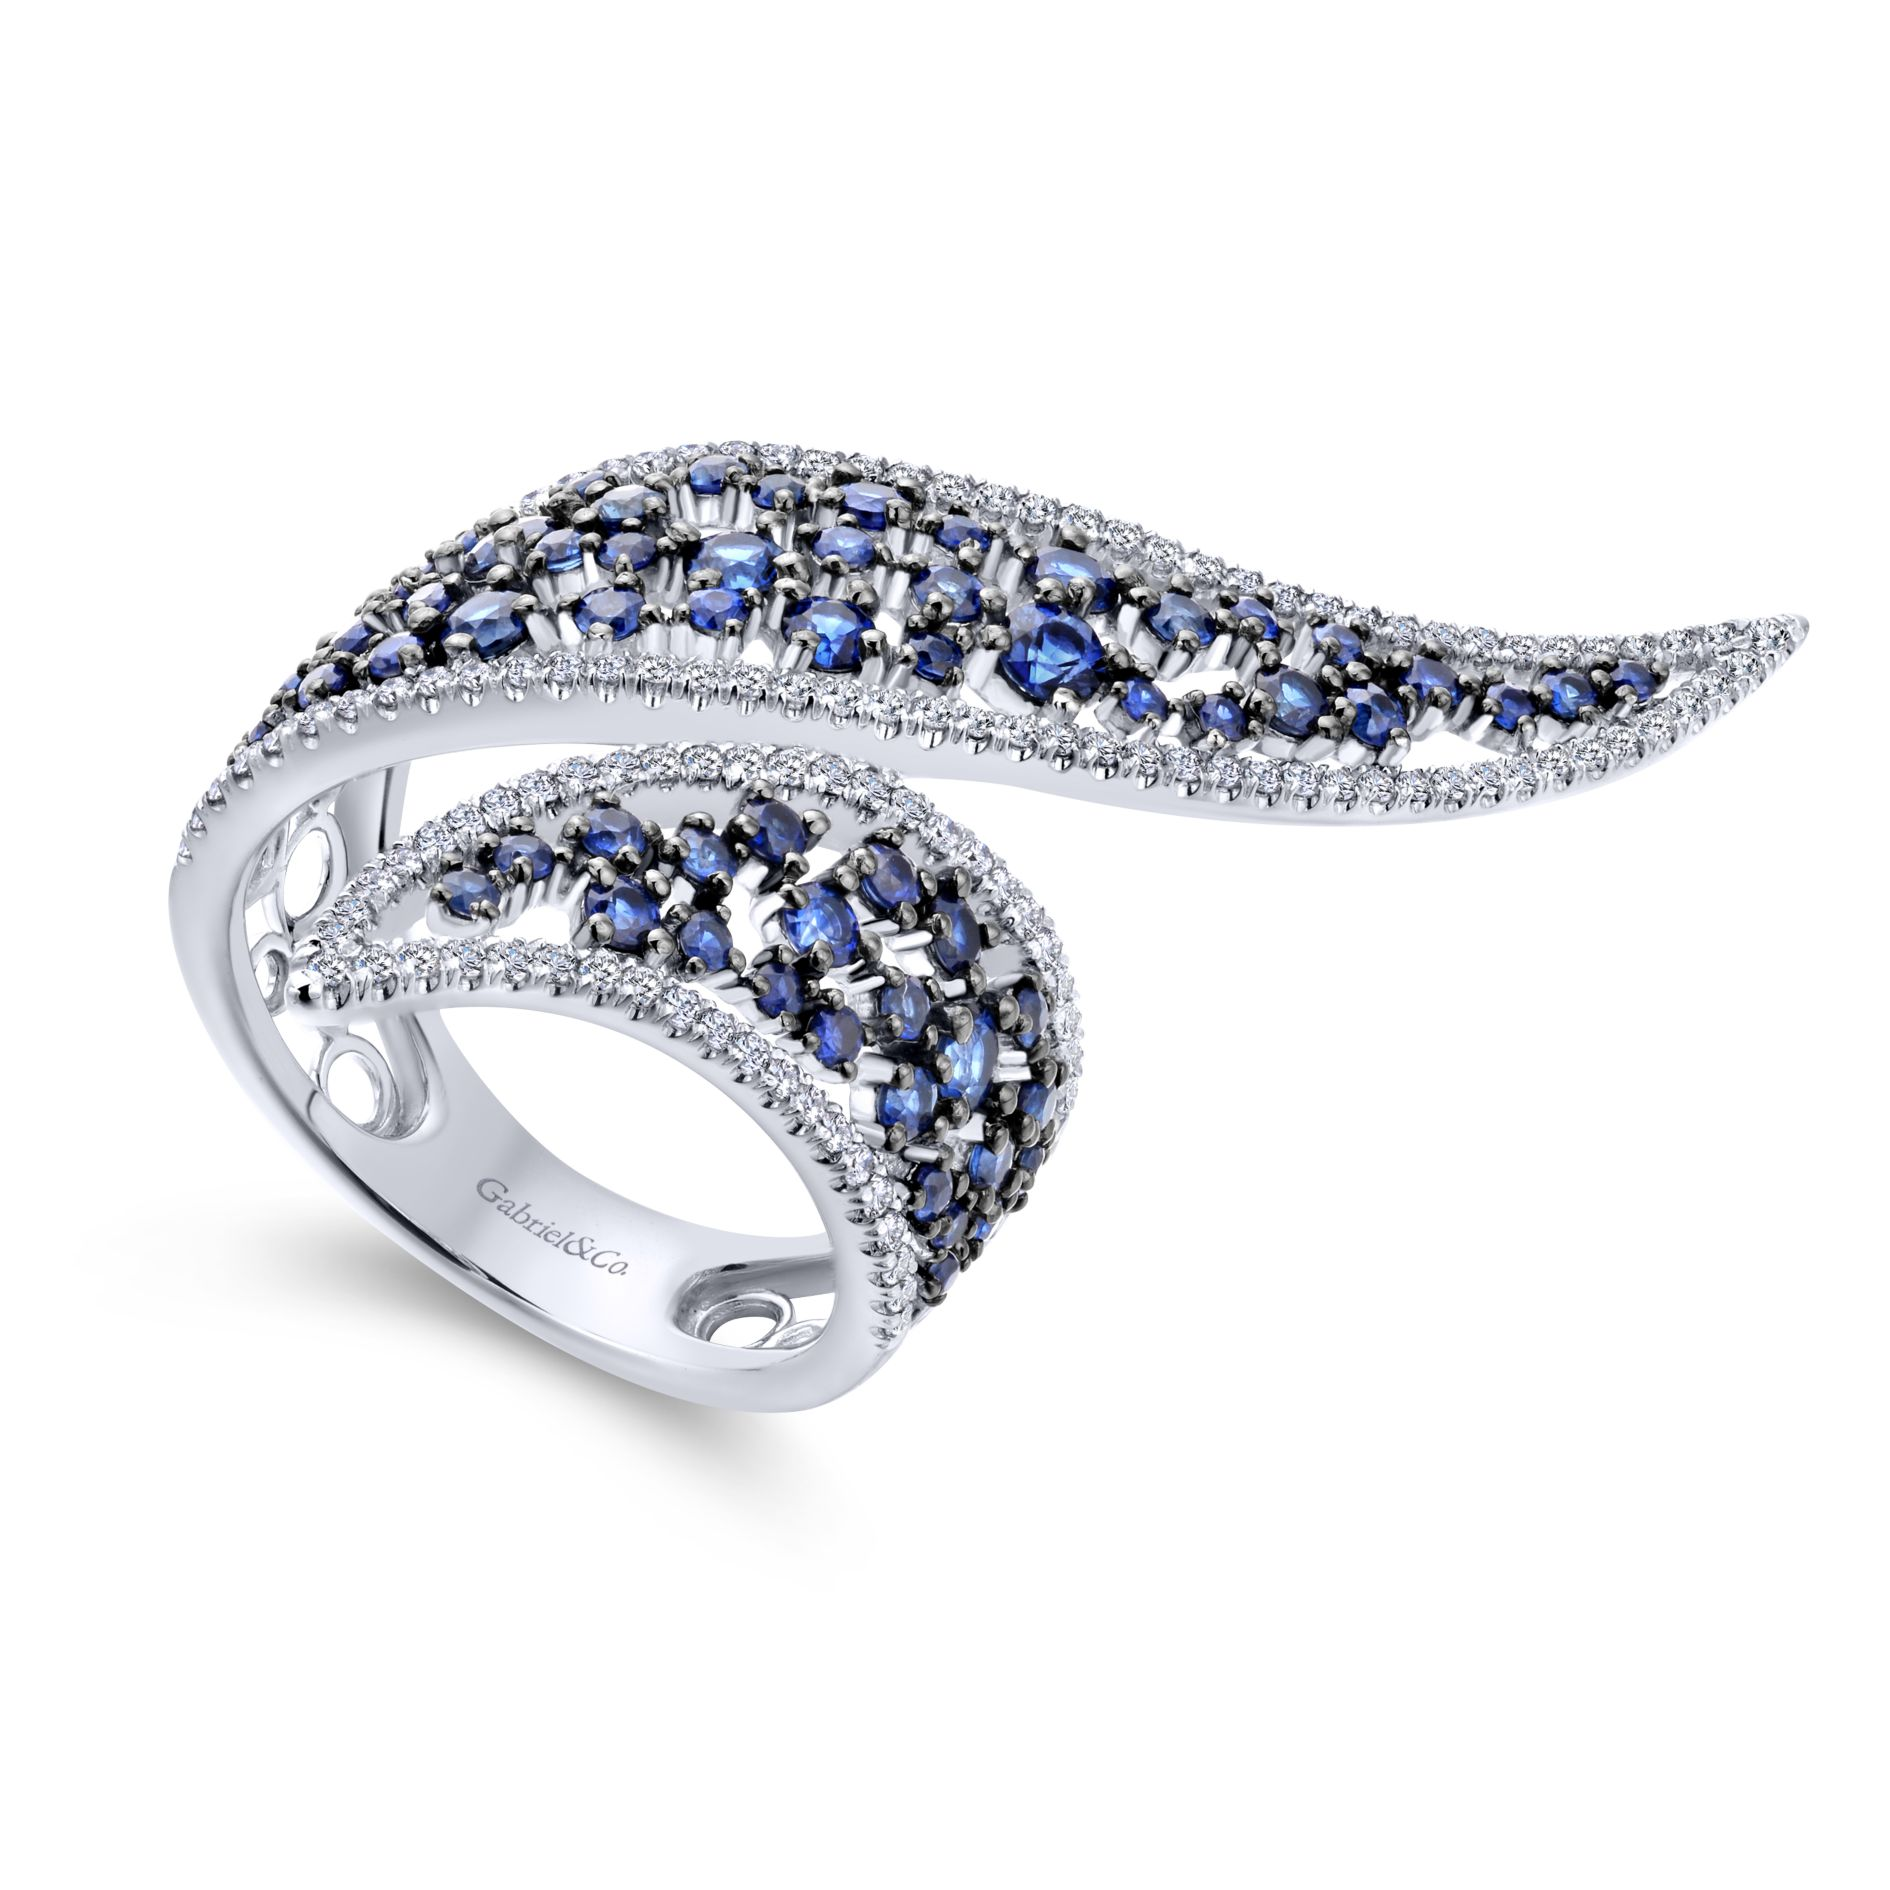 Rings - DIAMOND AND SAPPHIRE LADIES RING - image #3